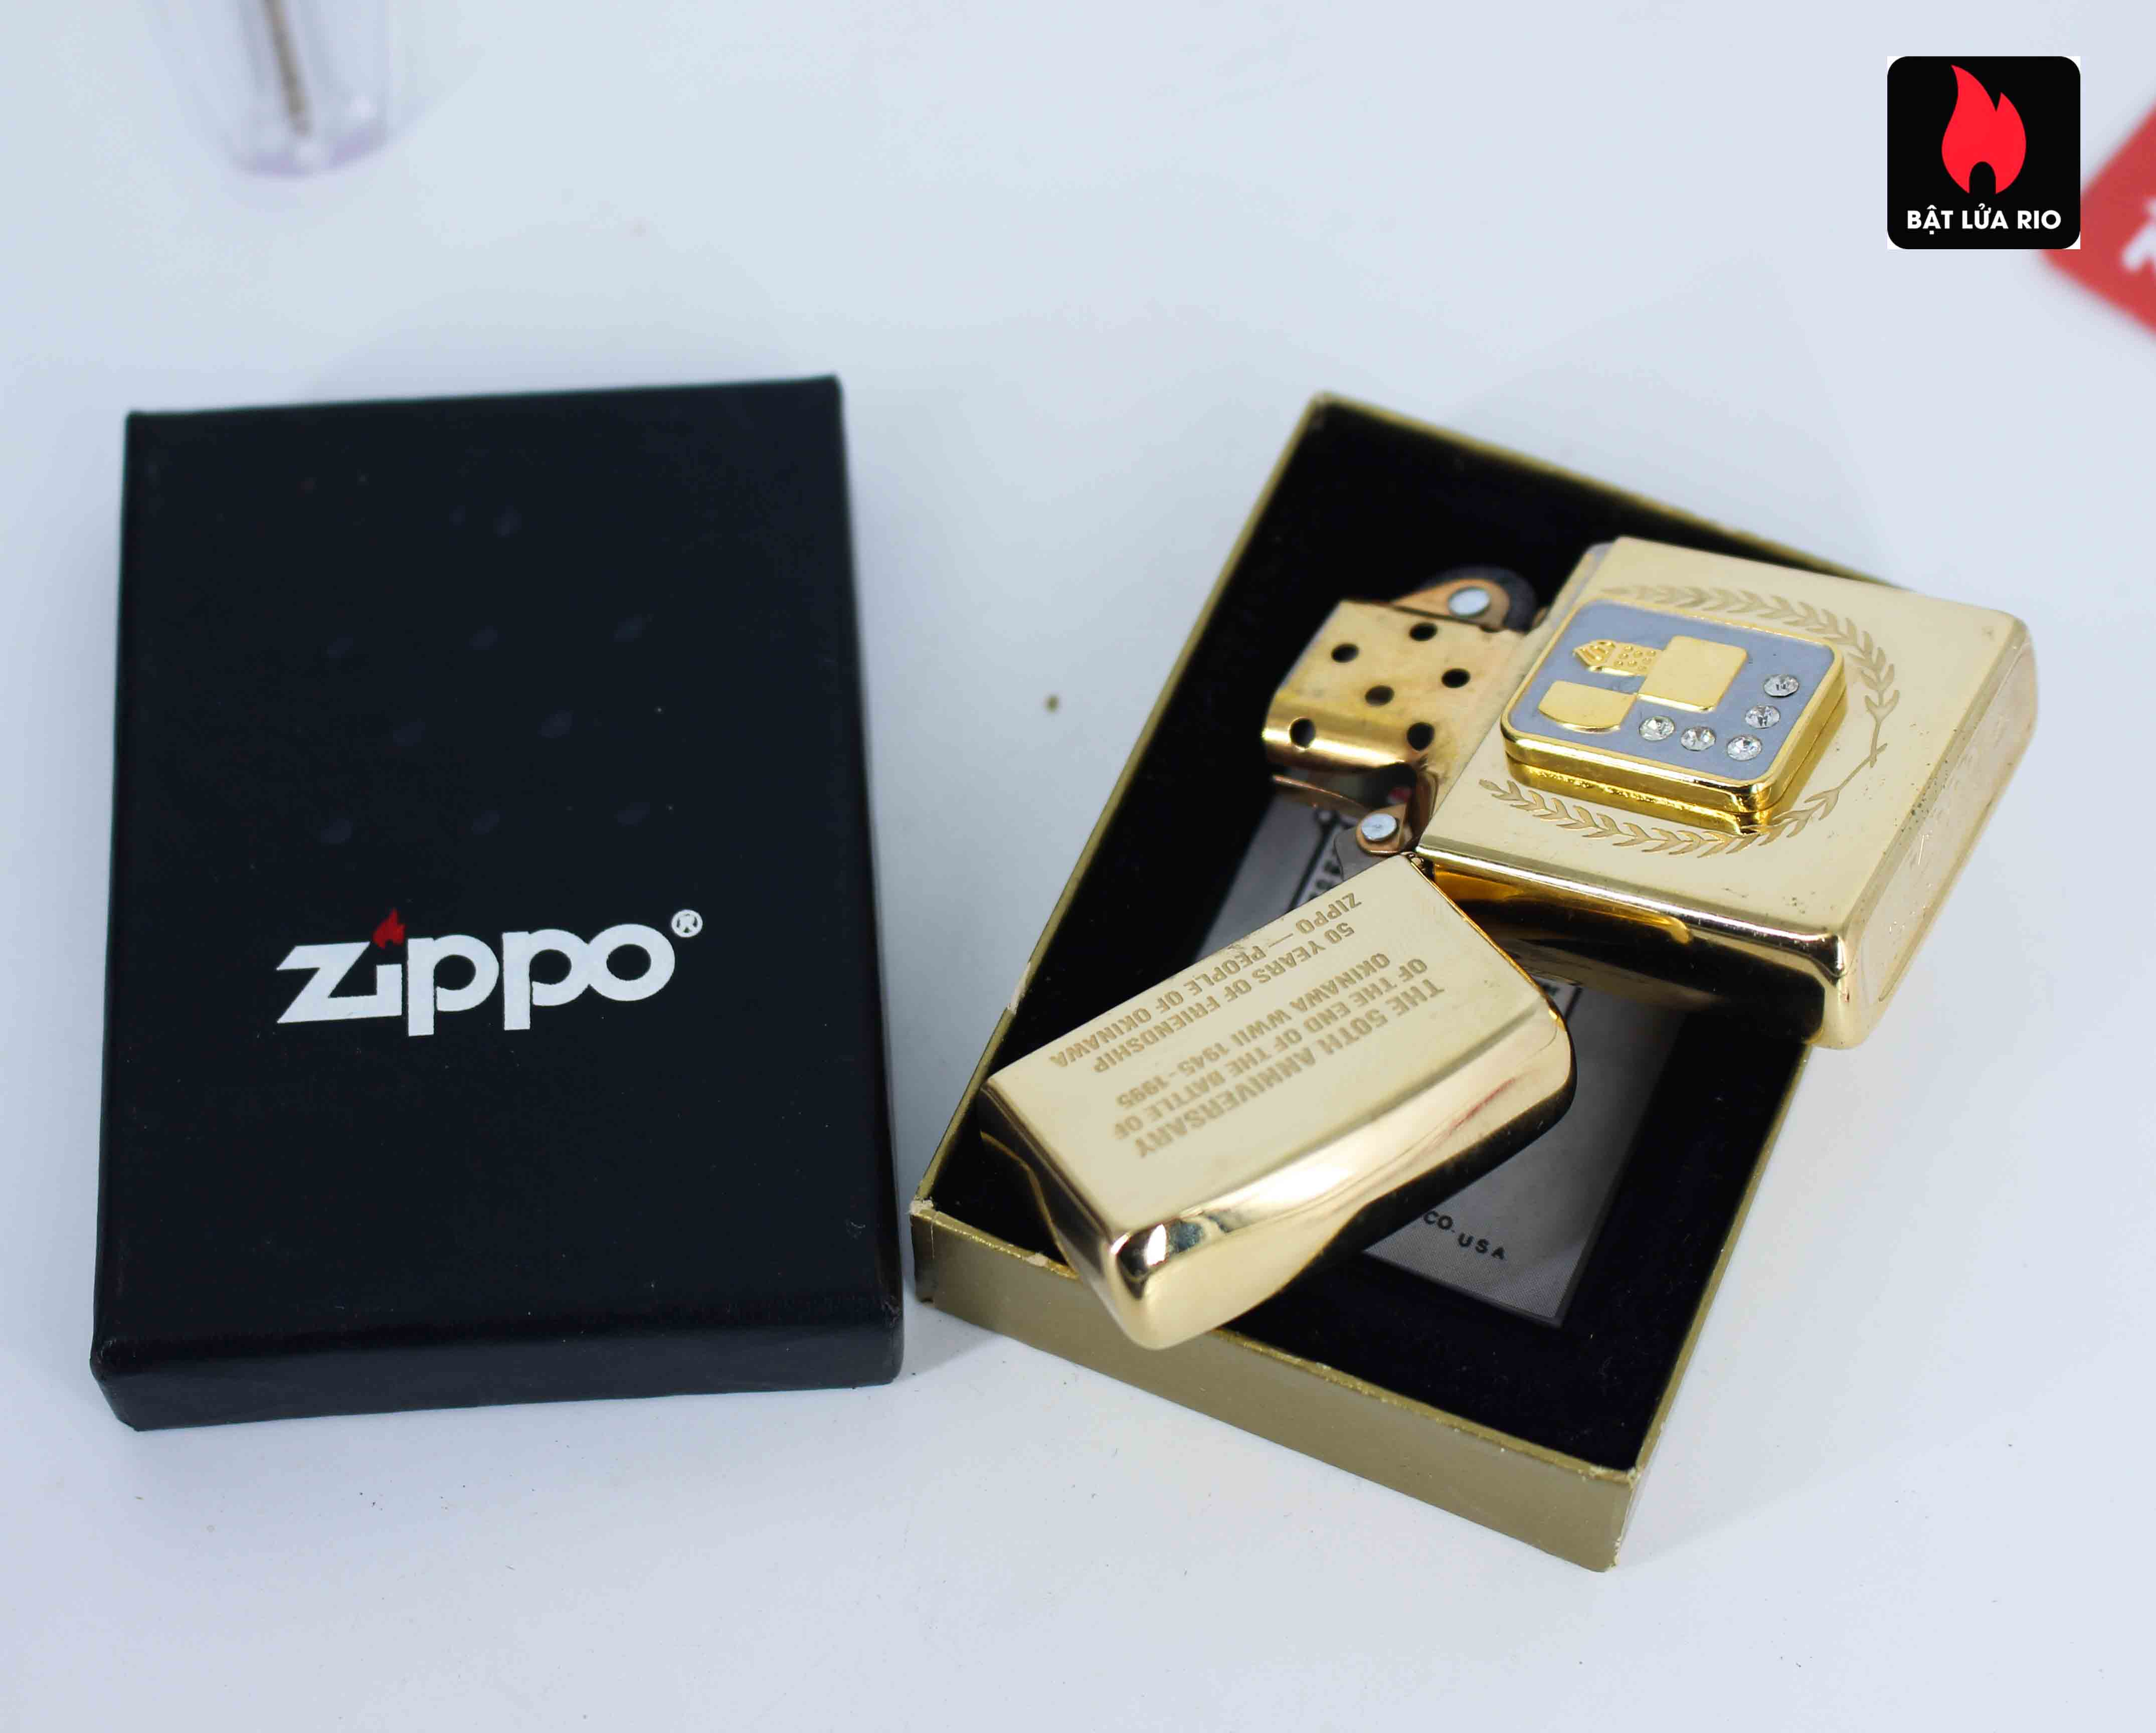 Zippo La Mã 1995 - 50th Anniversary Of The And Of The Battle Of Okinawa WWII 1945-1995 4